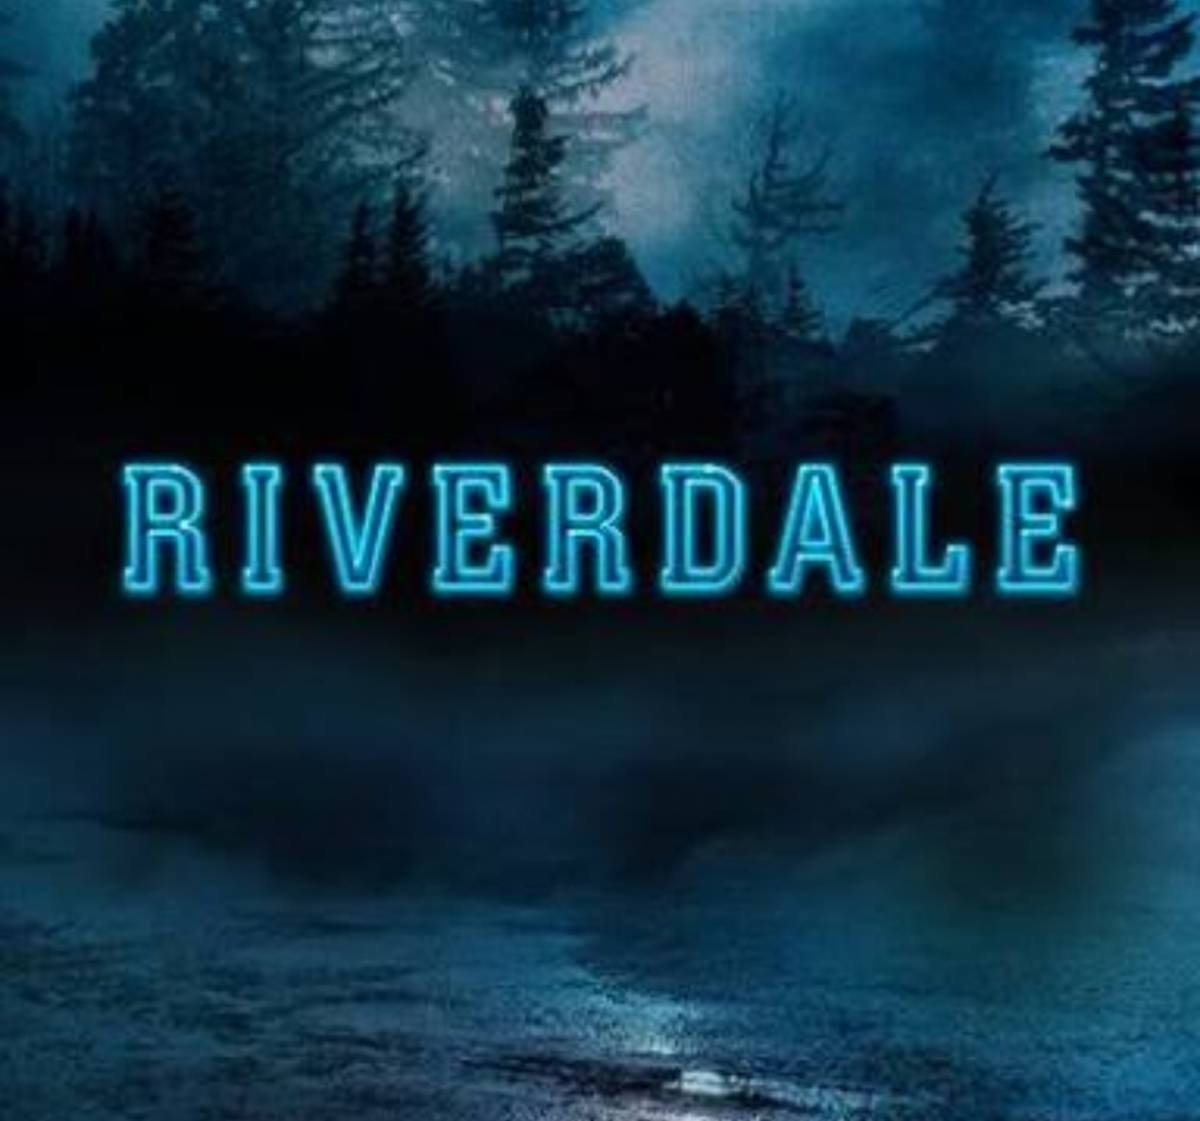 Classy Wallpapers For Iphone Which Riverdale Character Are You